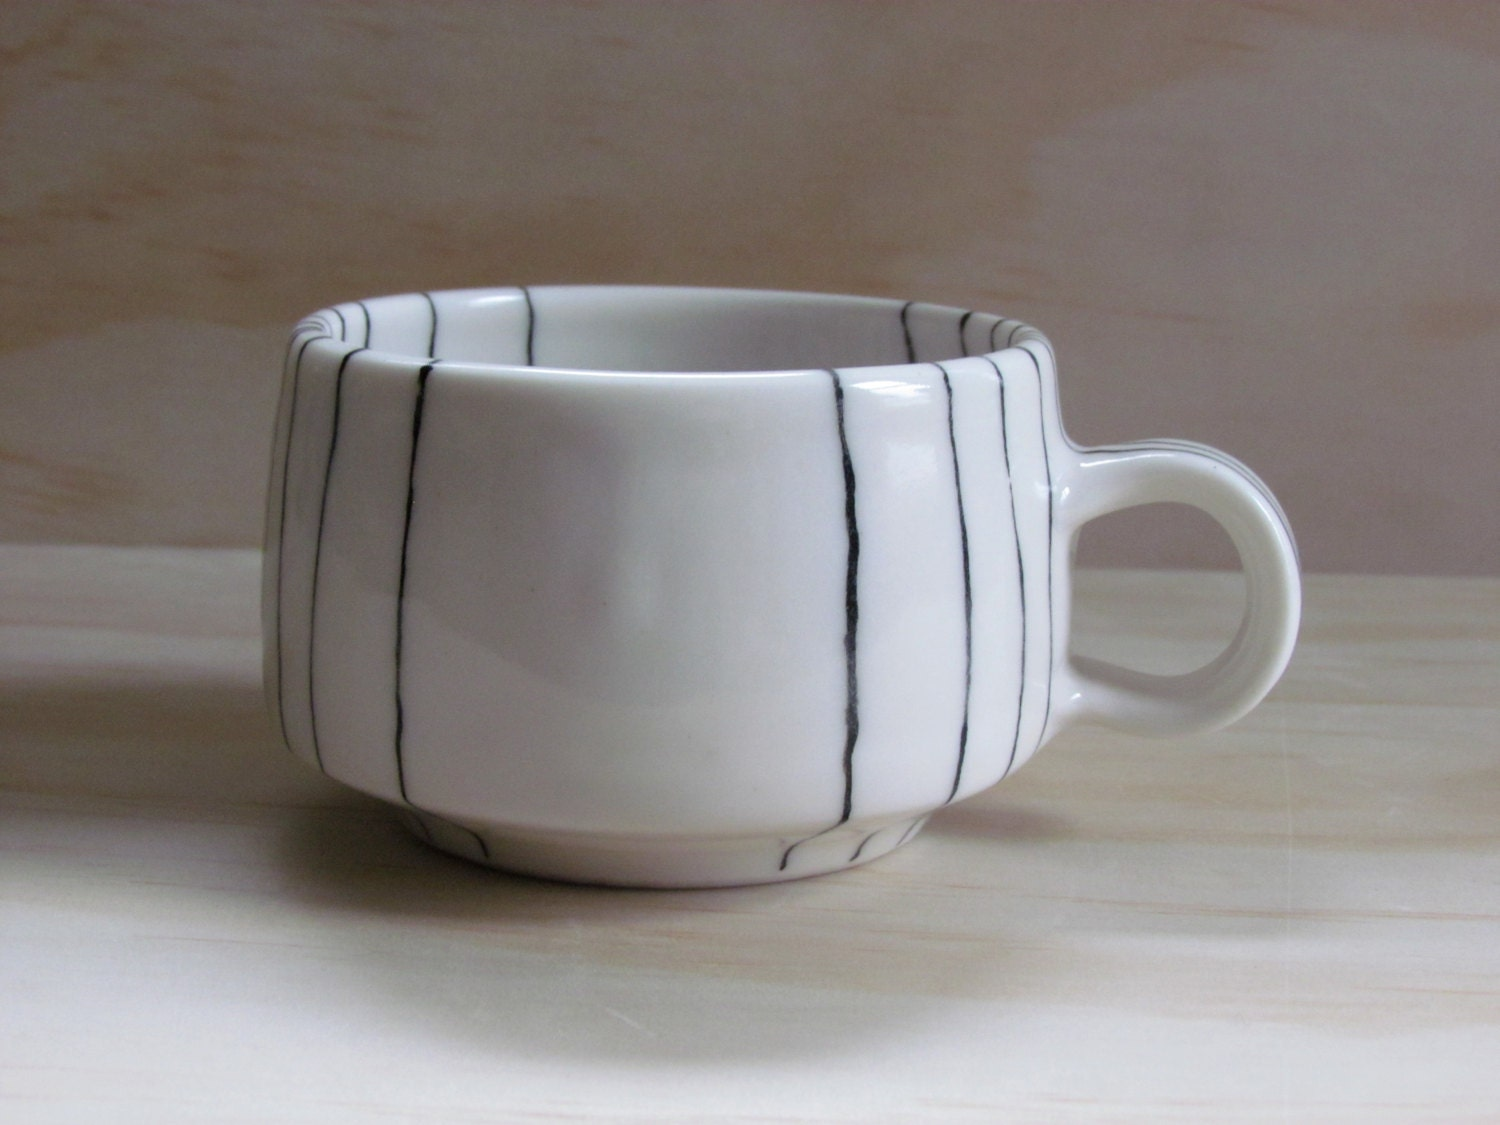 Black and White Line Tea or Coffee Mug. Graphic design. Modern ceramic porcelain mug.